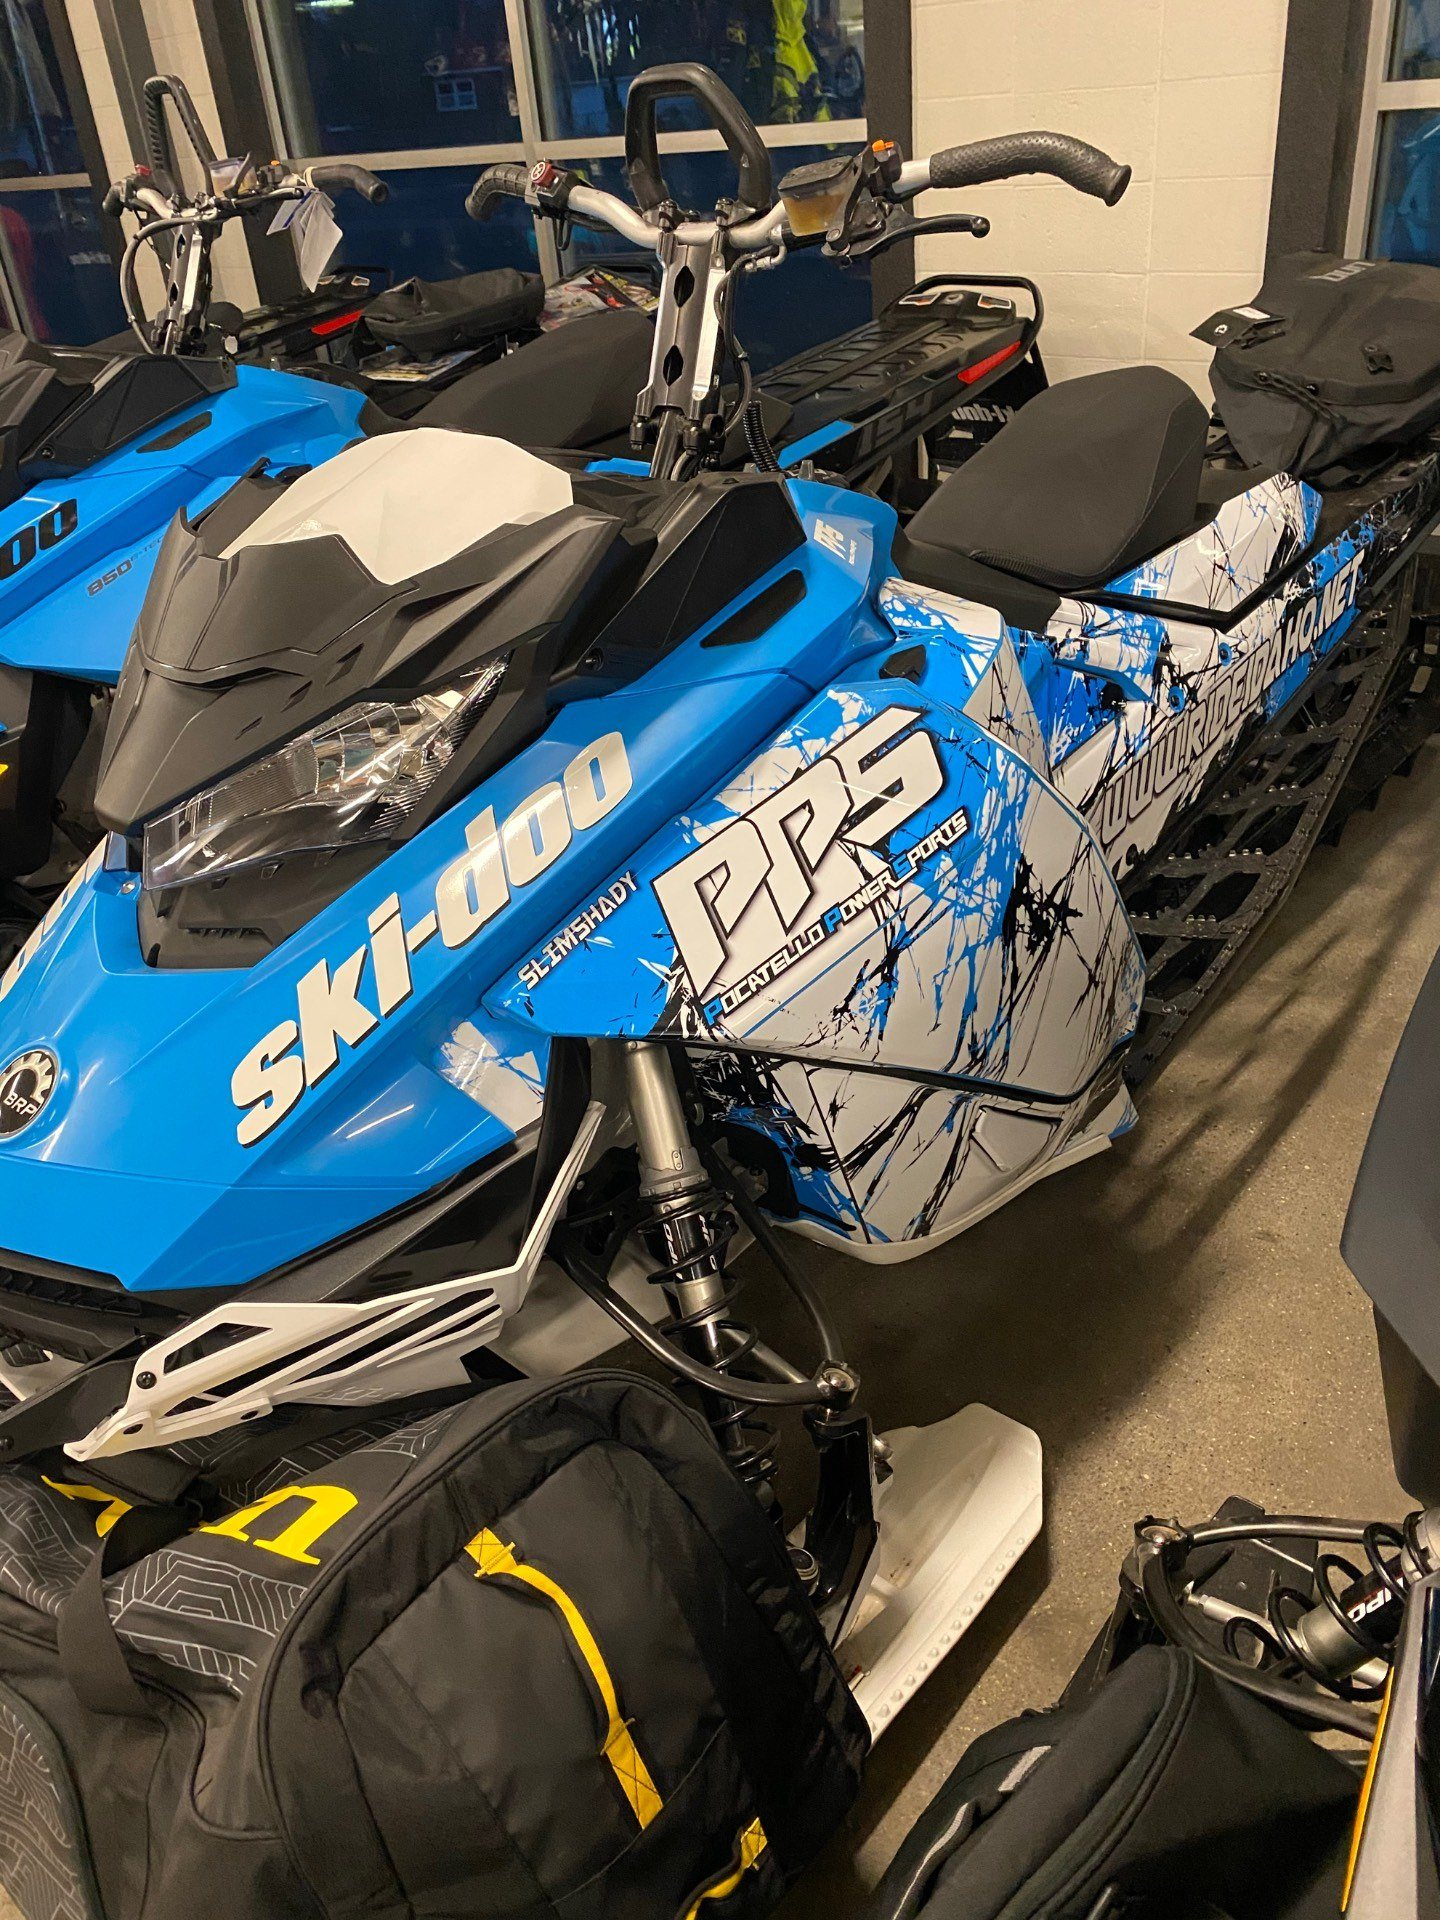 2020 Ski-Doo 2020 Ski-Doo Summit SP 154 in Pocatello, Idaho - Photo 2